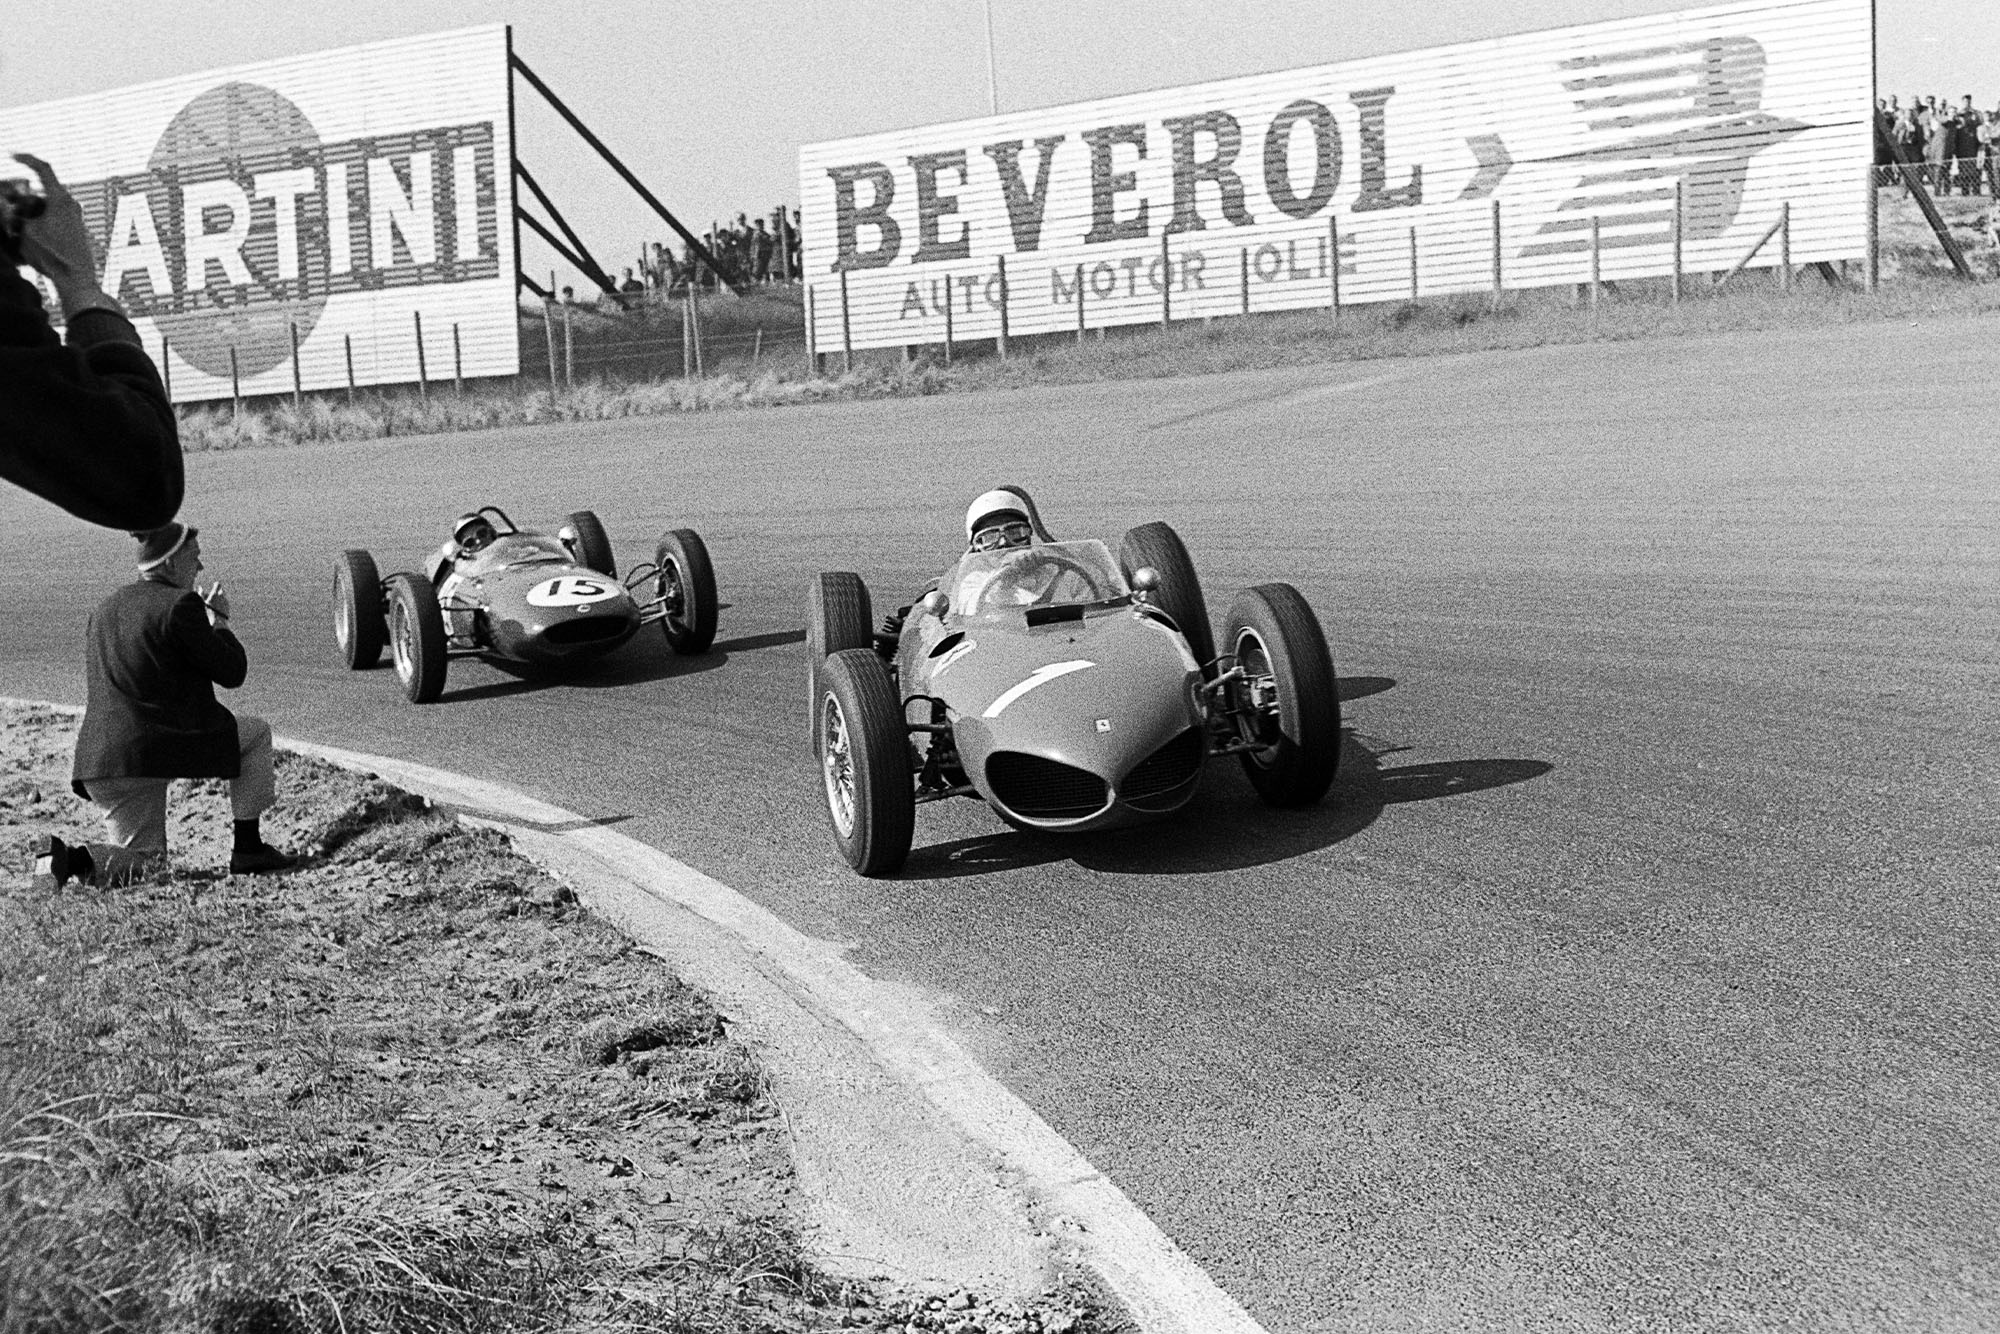 Phil Hill, Jim Clark, Ferrari 156 Sharknose, Lotus-Climax 21, Grand Prix of the Netherlands, Circuit Park Zandvoort, 22 May 1961. (Photo by Bernard Cahier/Getty Images)